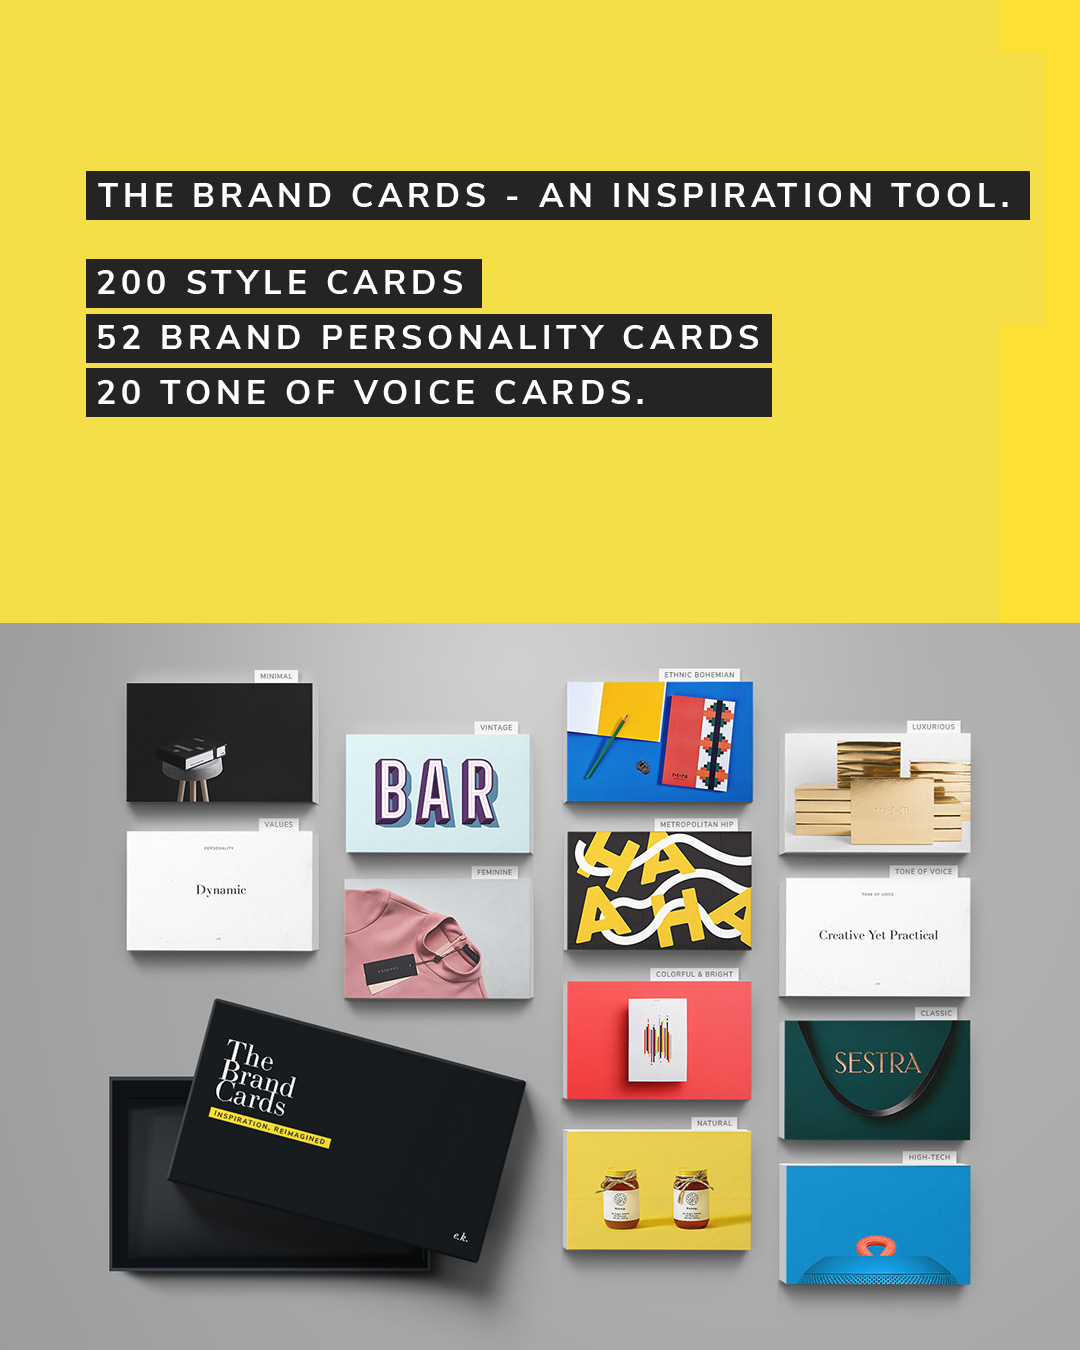 The Brand Cards - our visual brainstorming tool for brand strategists, designers, and creative teams.  Check it out here .